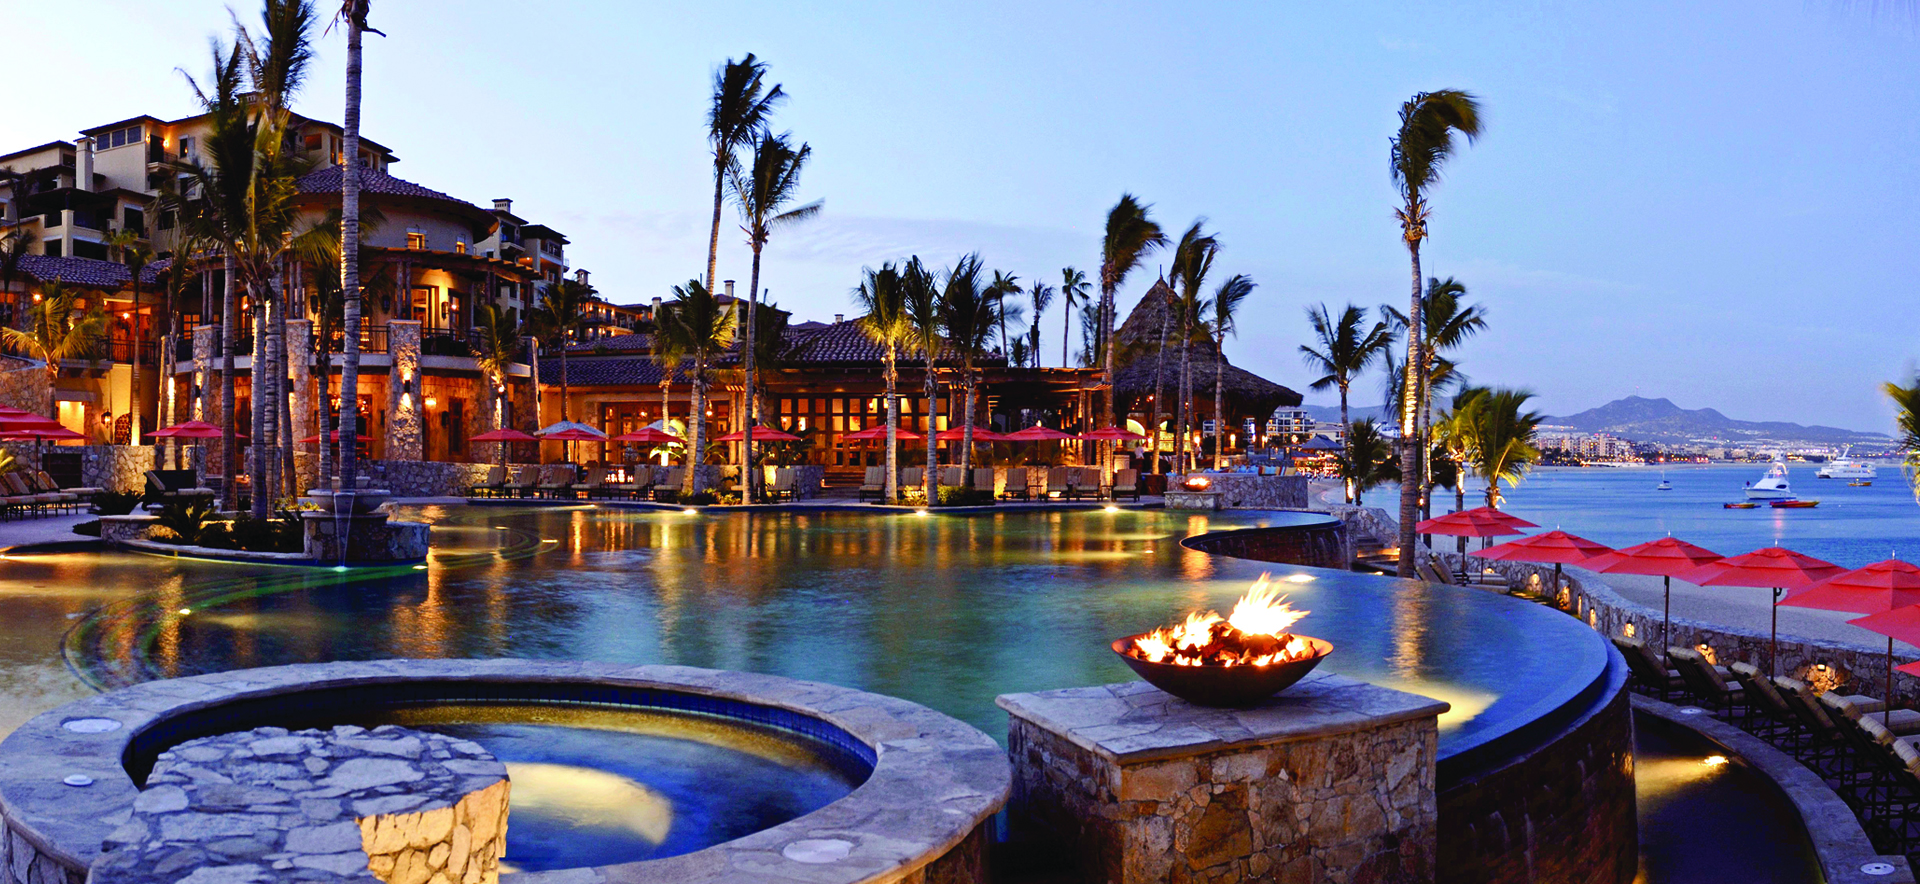 10 Ultimate Bachelor Party Spots - Cabo San Lucas, Mexico